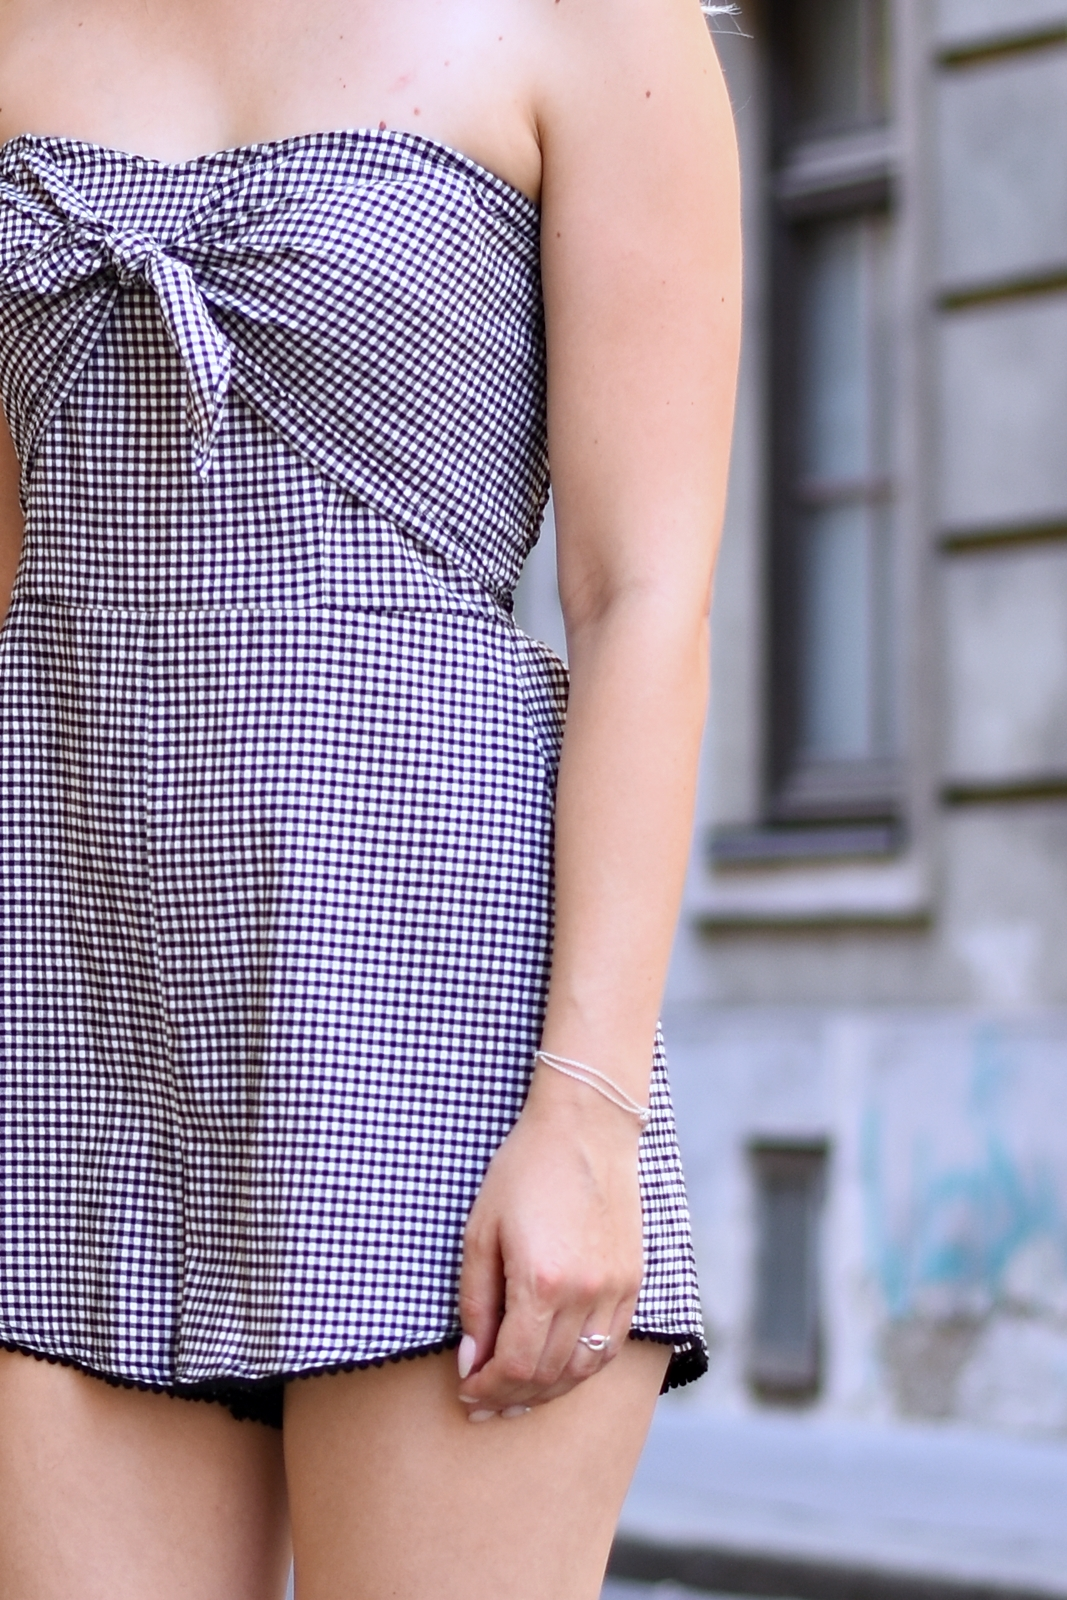 Der Gingham Jumpsuit - Blogparade - Outfit - Mode - Fashion- Style - Streetstyle - modern - stylish - Trend - High Heels - Crossbody Bag - Tiffany&Co - Fashionladyloves by Tamara Wagner - Fashionblog - Styleblog - Modeblog aus Graz - Lifestyle Bloggerin